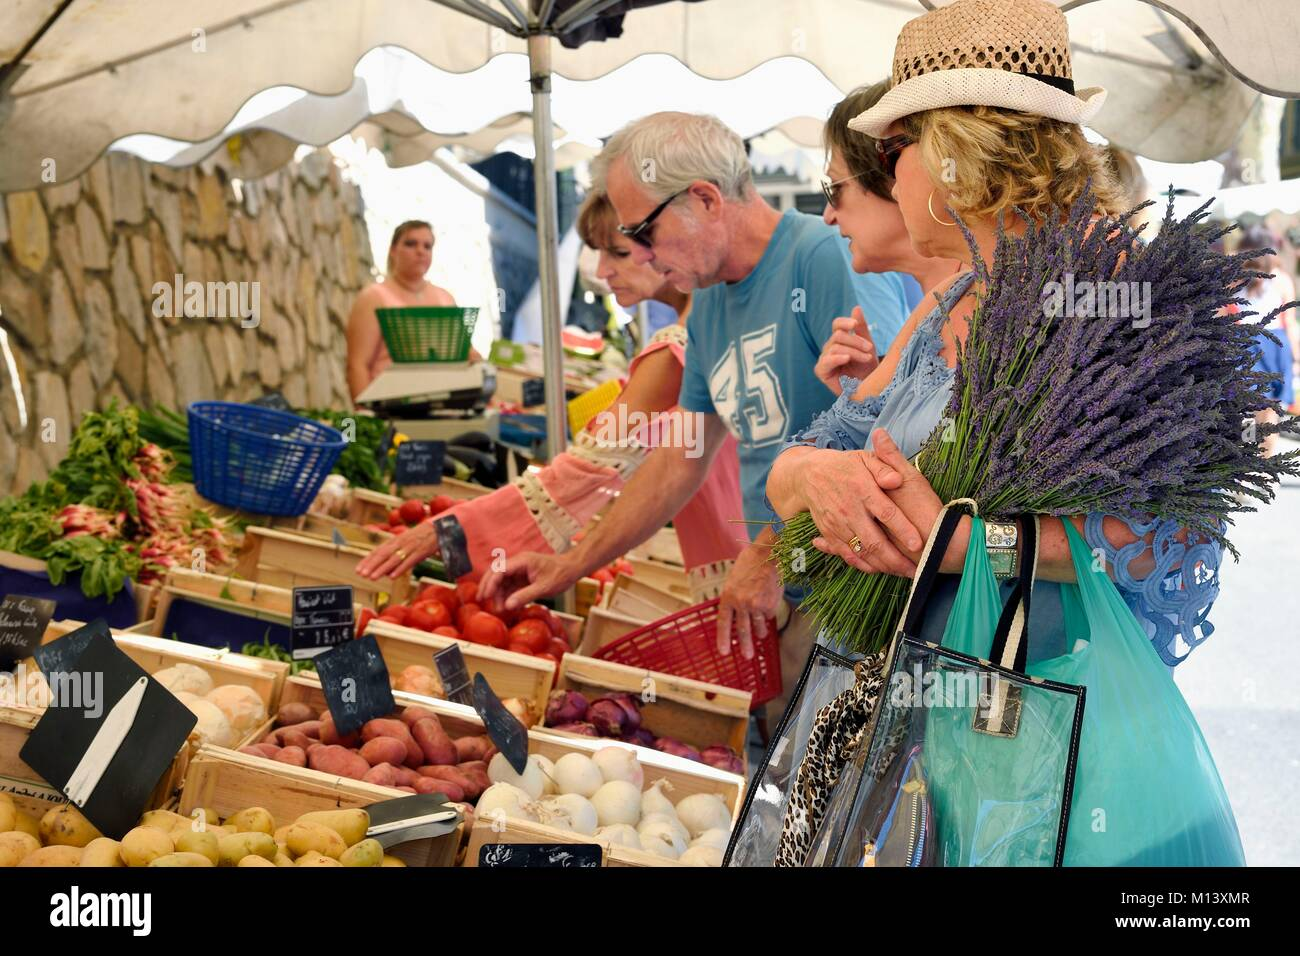 France, Var, Provence Verte, Cotignac, cours Gambetta, the market on the main square, vegetables stall - Stock Image